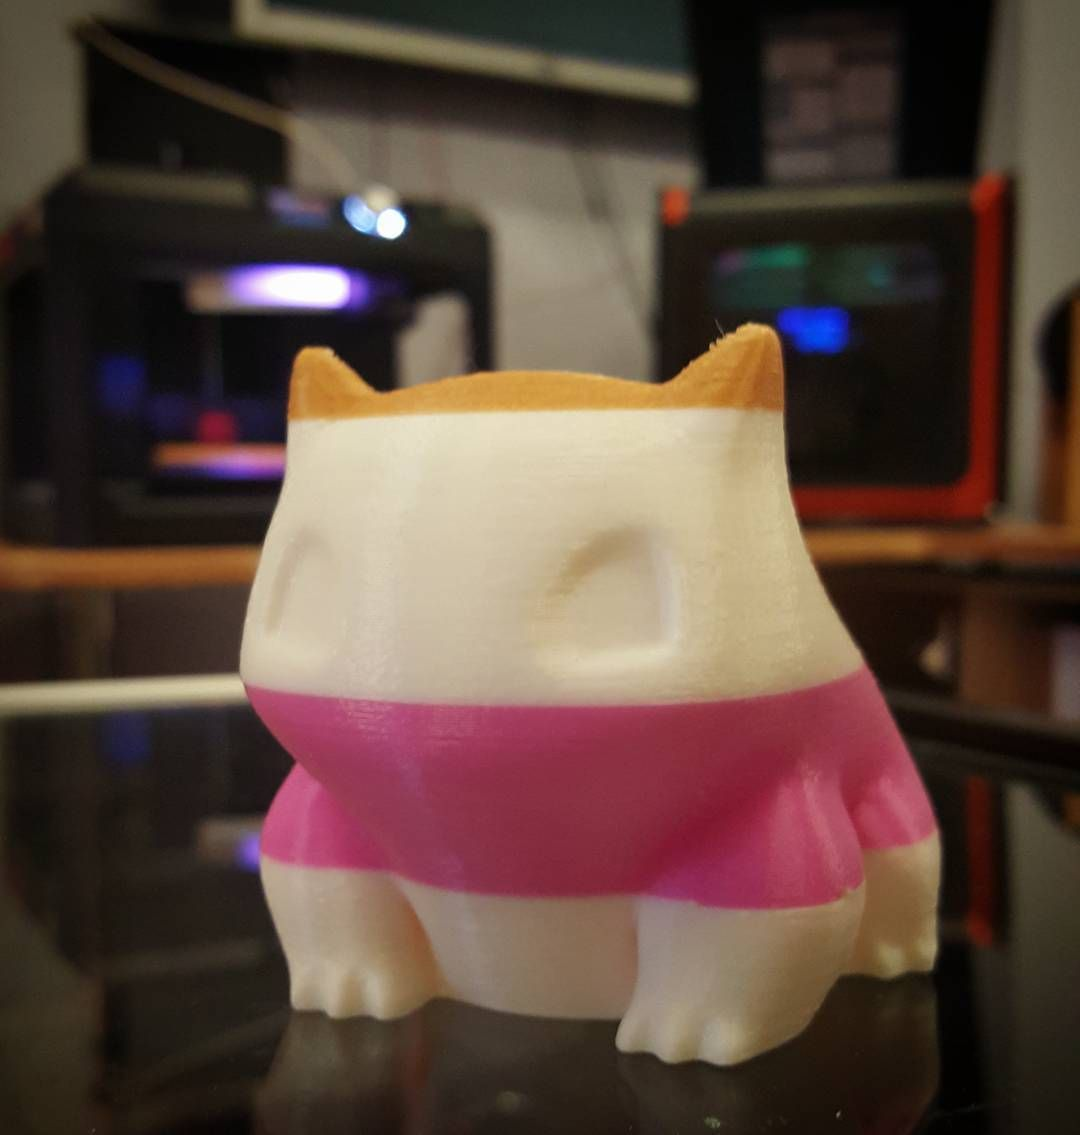 Getting creative to use up the rest of a few filament spools! Bulbasaur never looked so fancy  by 3dcentralva